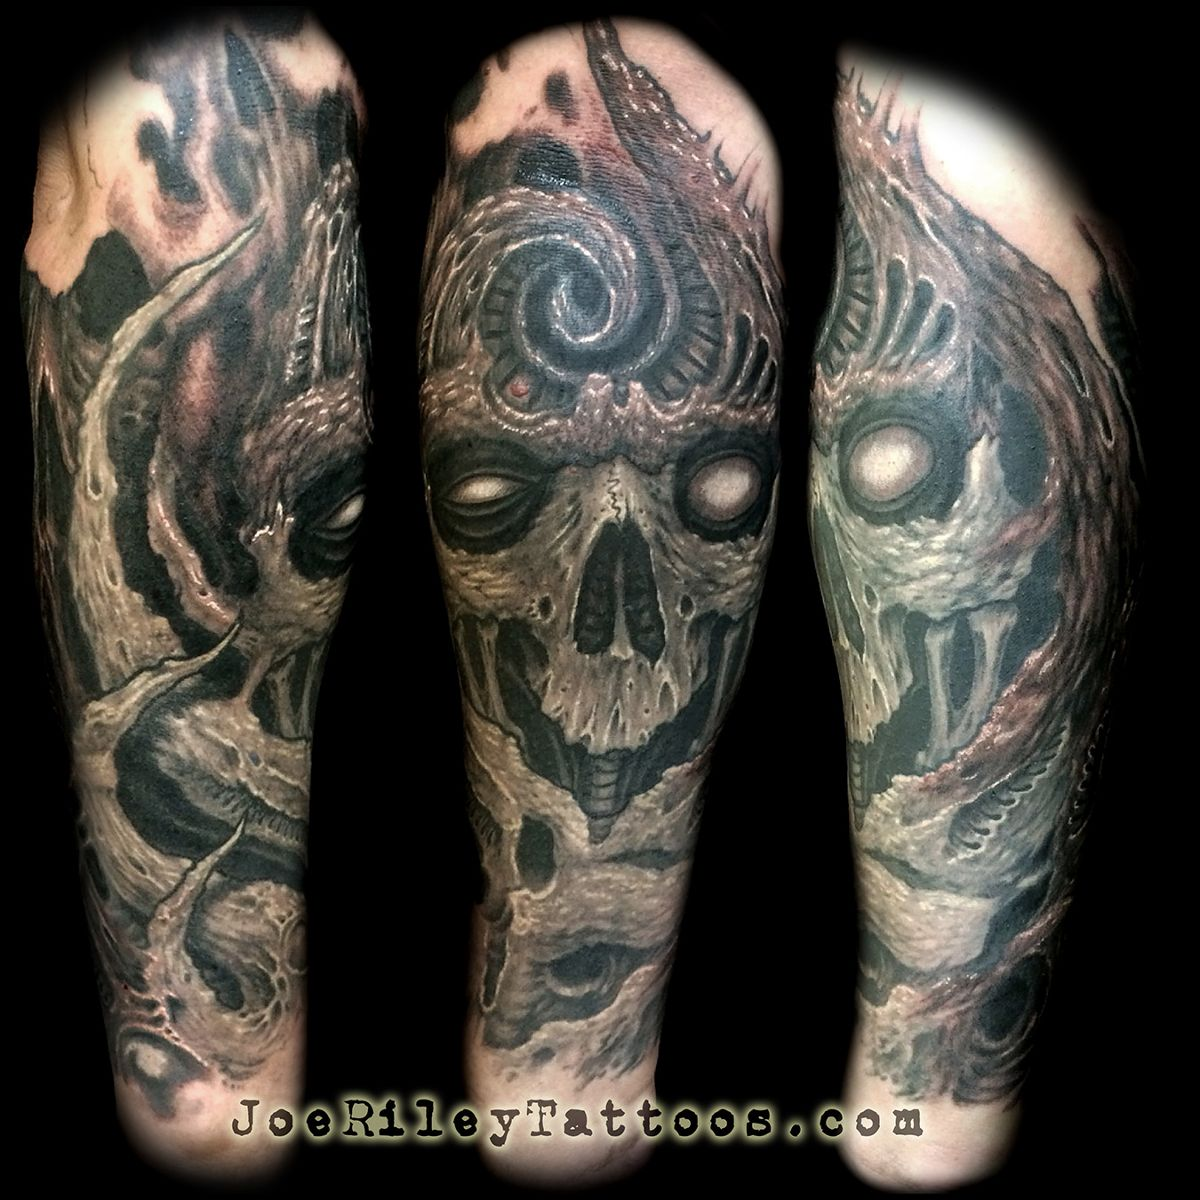 best las vegas tattoo artist, best las vegas tattoo shops, custom biomech tattoos, joe riley